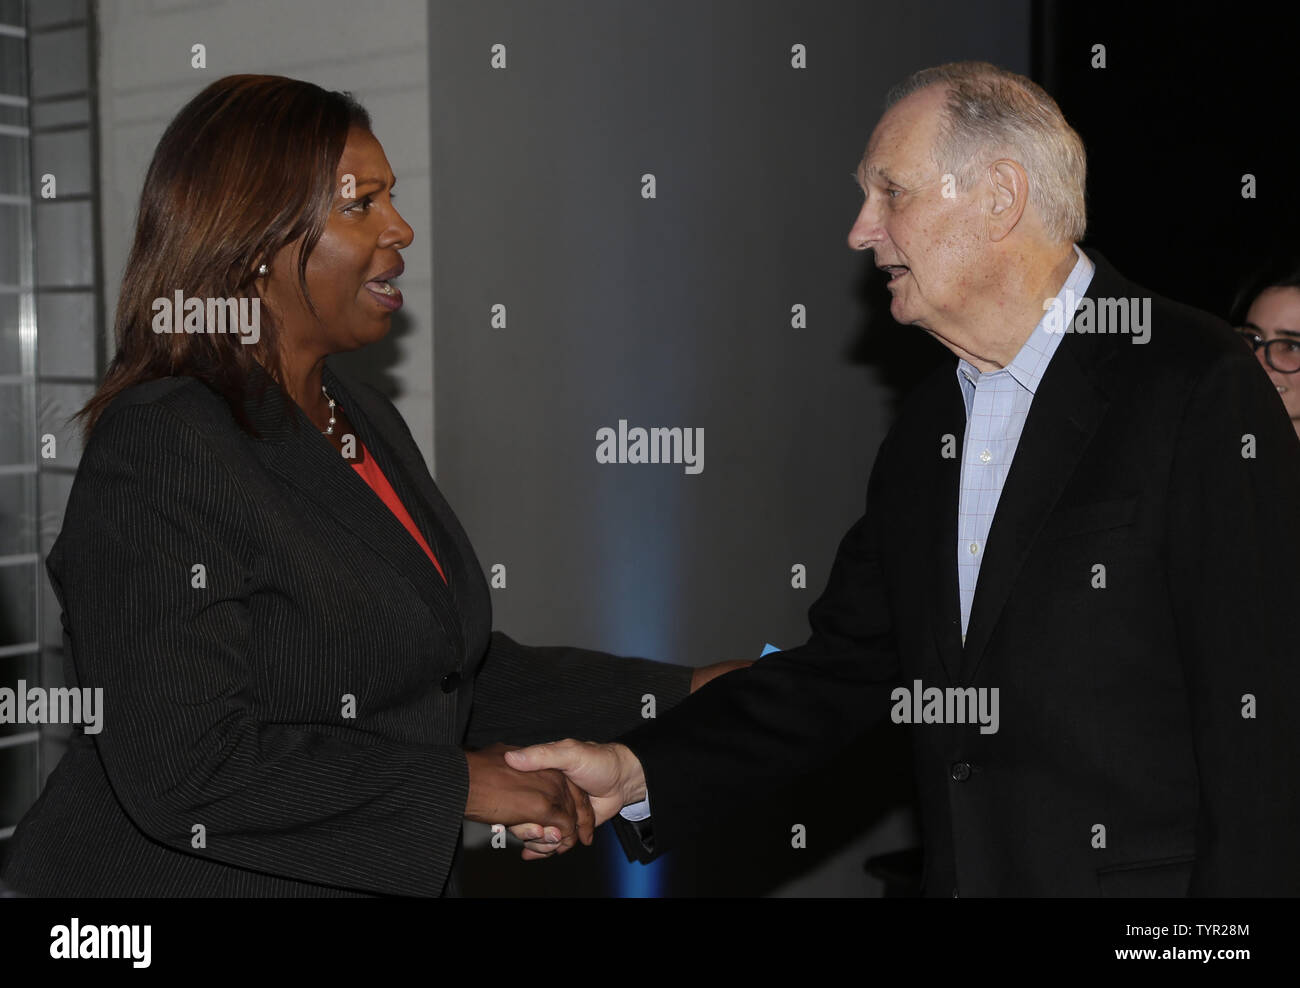 Alan Alda and NYC Public Advocate Letitia James arrive on the red carpet at 'The Walk' IMAX Special screening at the AMC Lincoln Square Theater on September 28, 2015 in New York City.     Photo by John Angelillo/UPI - Stock Image